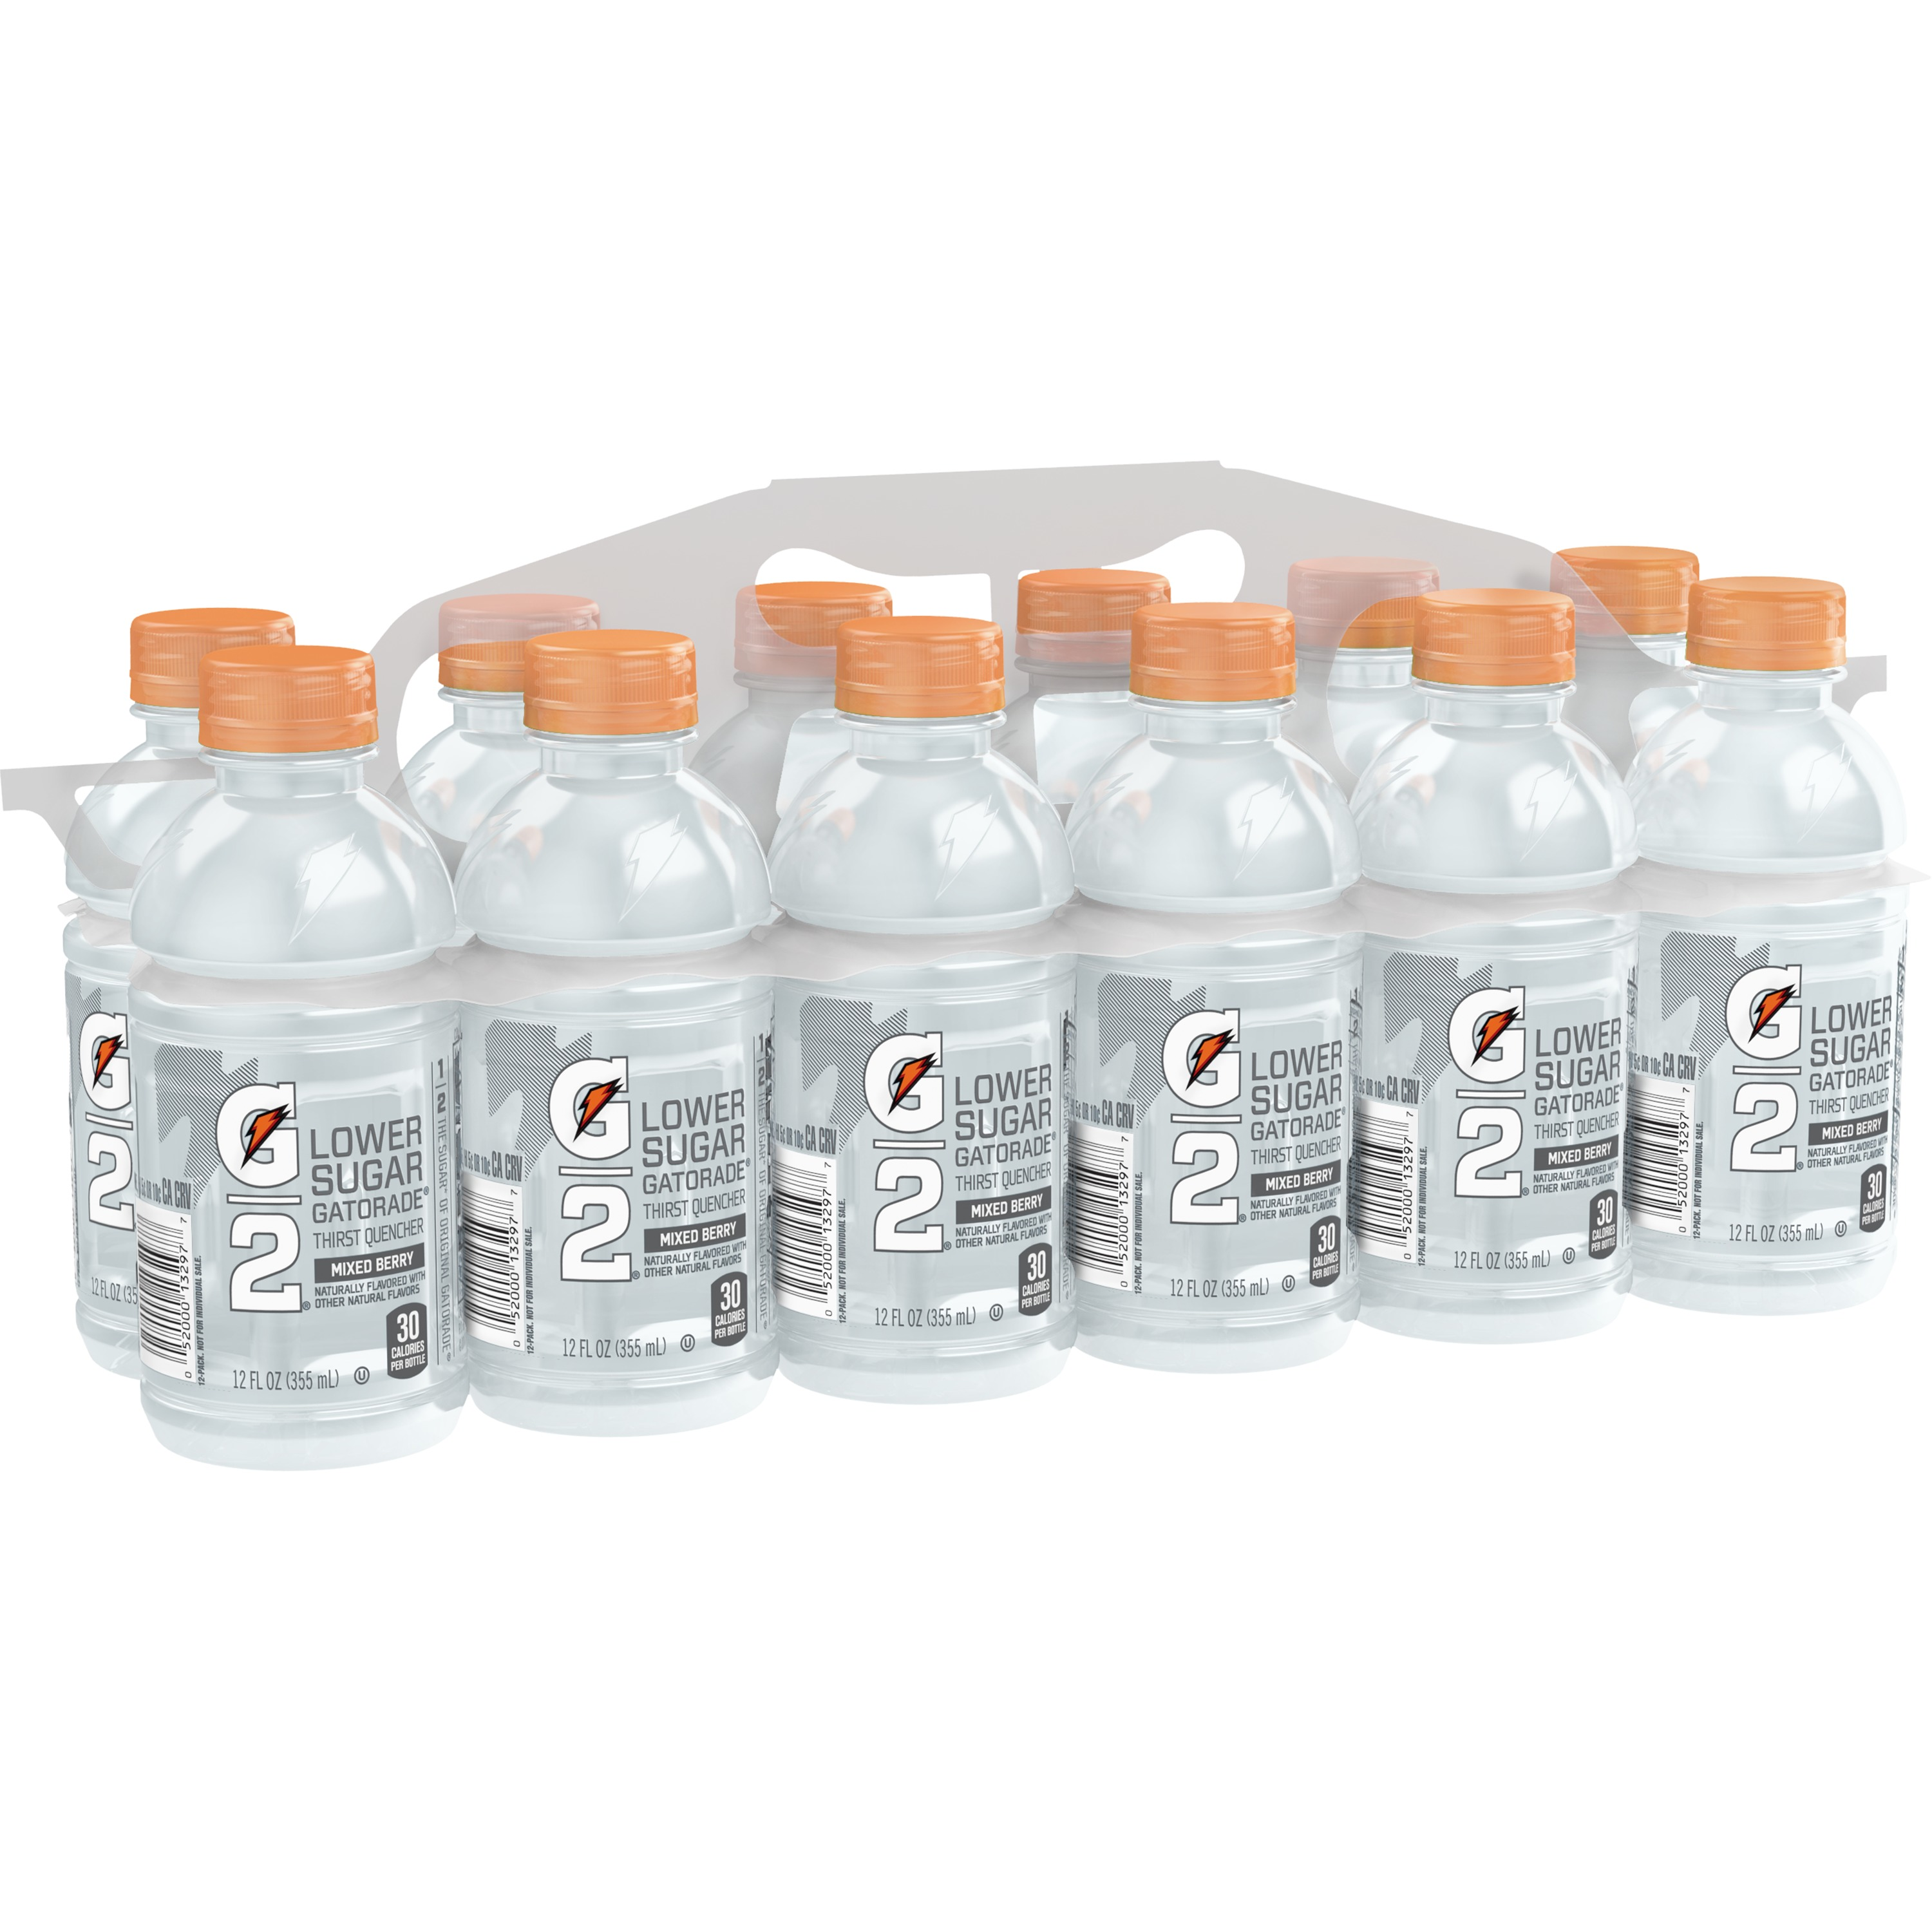 G2 Lower Sugar Gatorade Thirst Quencher Sports Drink, Mixed Berry, 12 Fl Oz, 12 Count